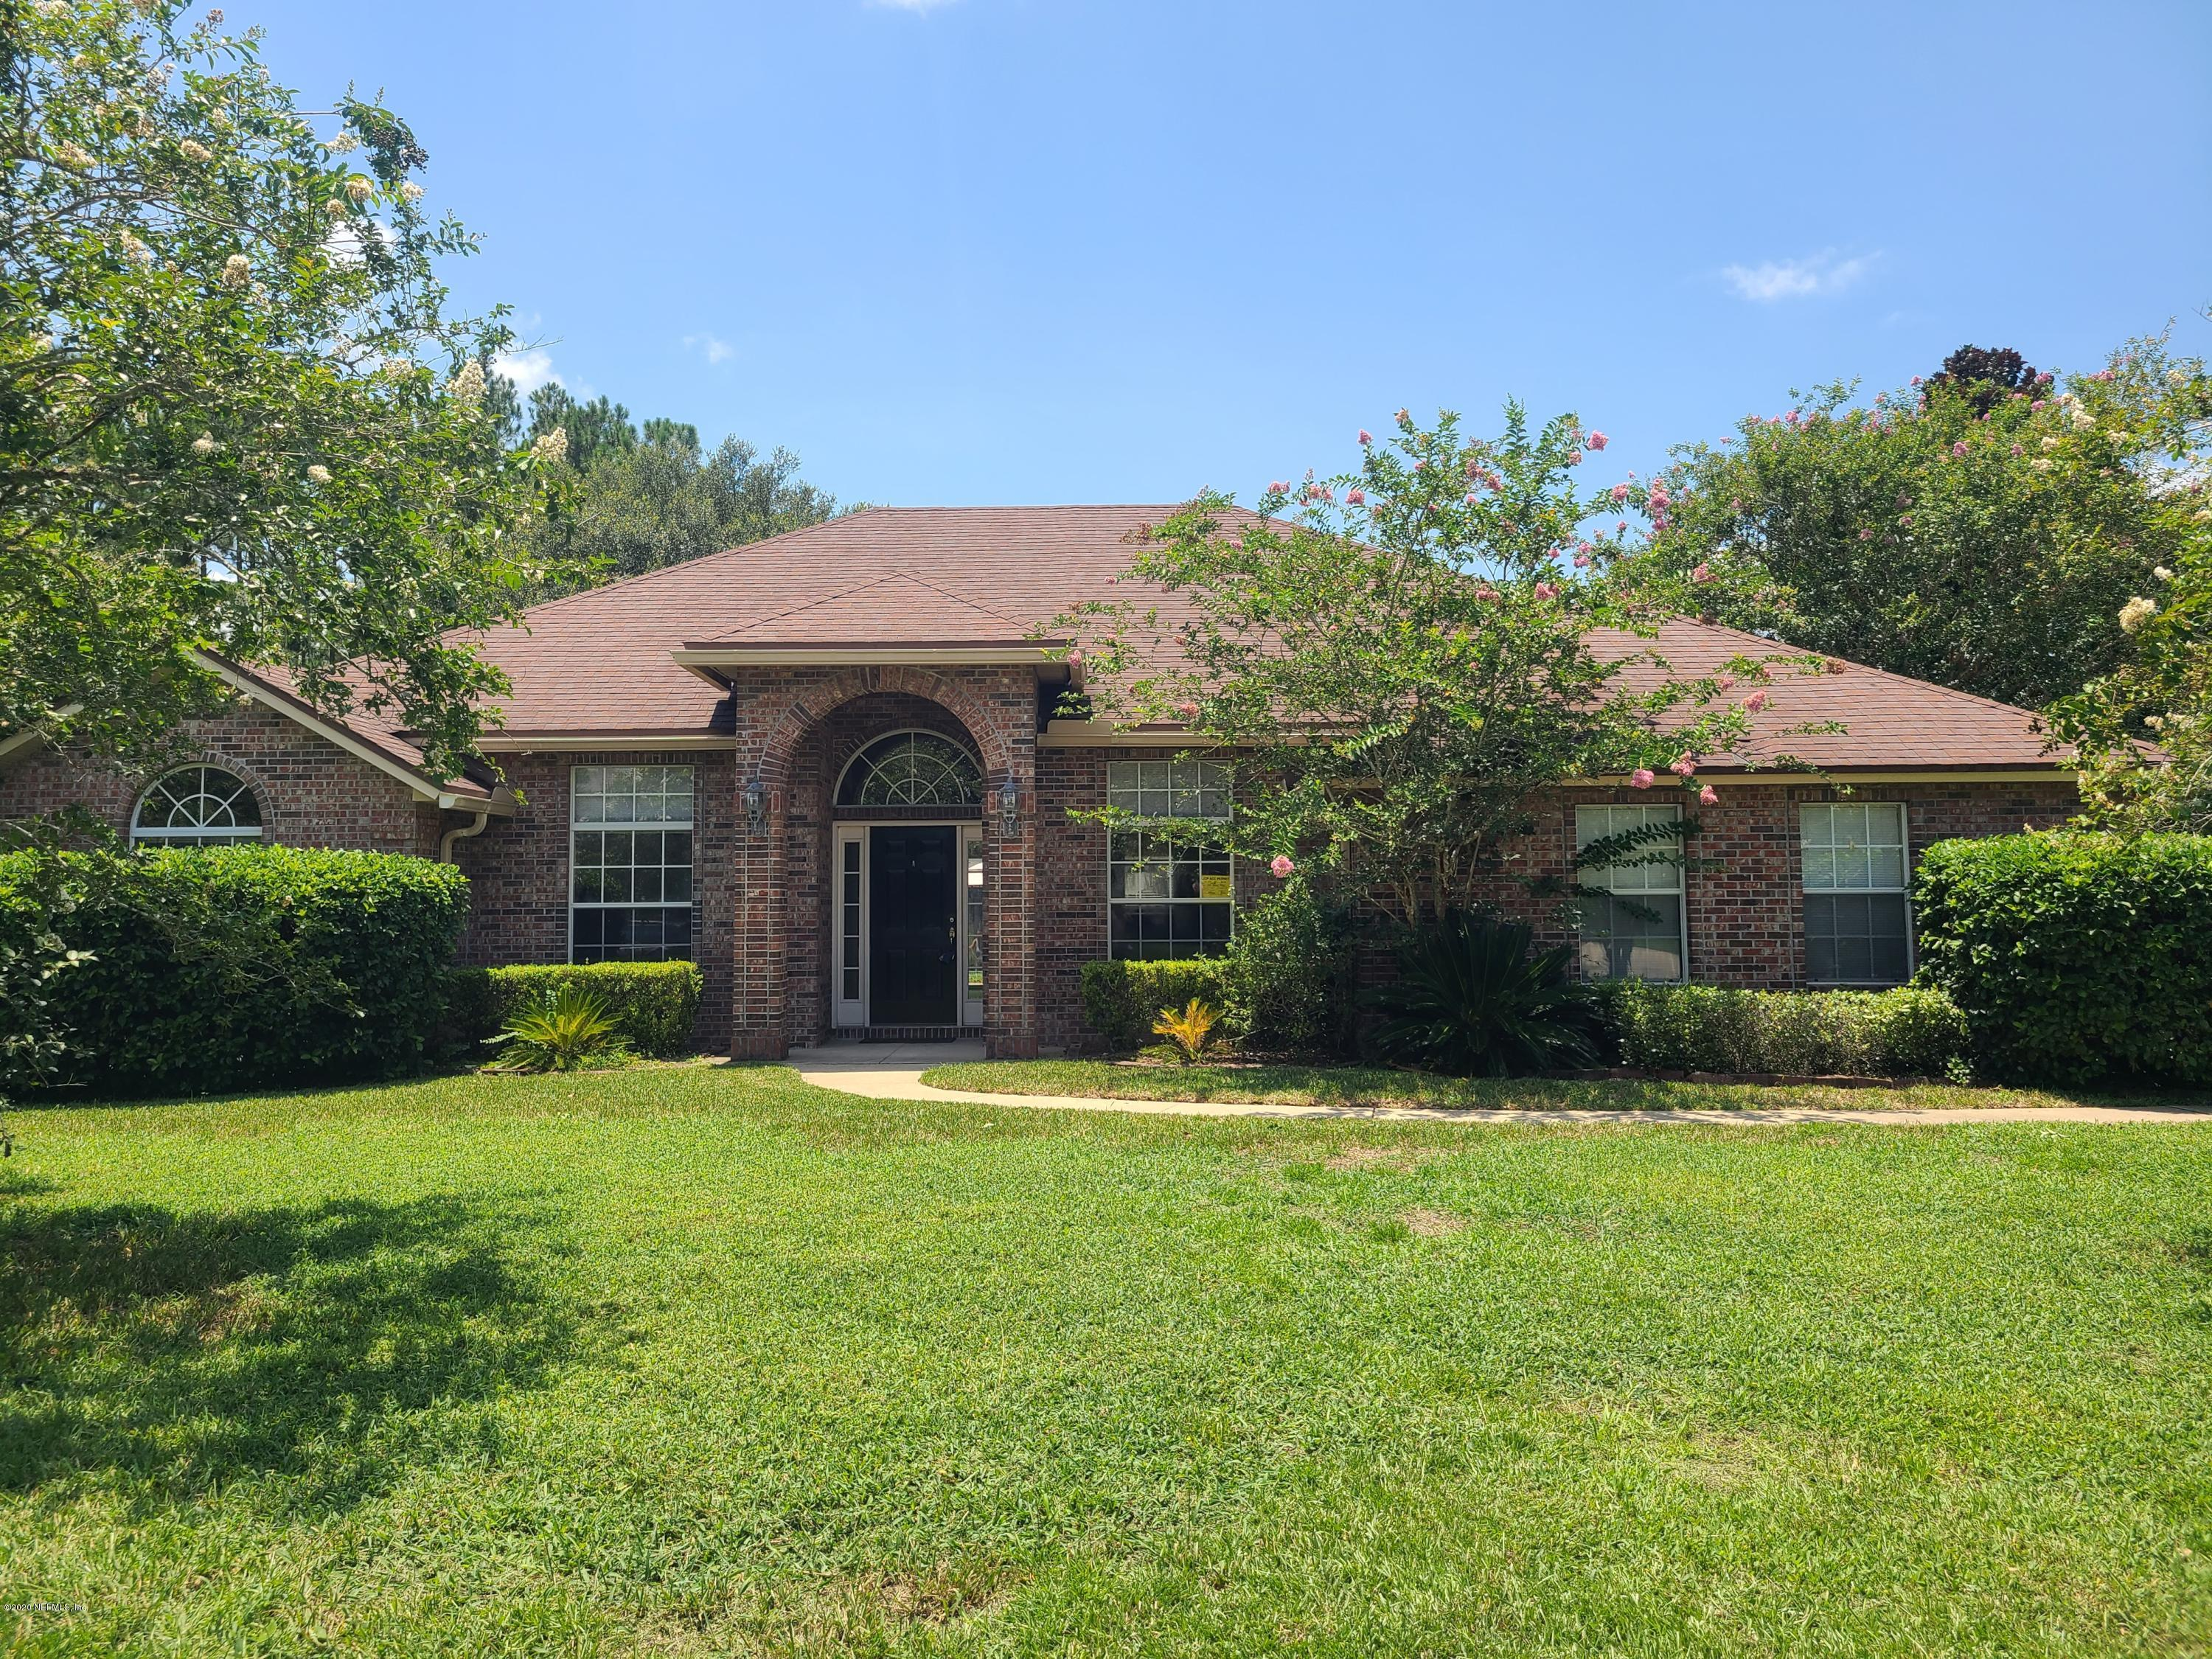 1501 MARCY, JACKSONVILLE, FLORIDA 32259, 4 Bedrooms Bedrooms, ,3 BathroomsBathrooms,Residential,For sale,MARCY,1062750